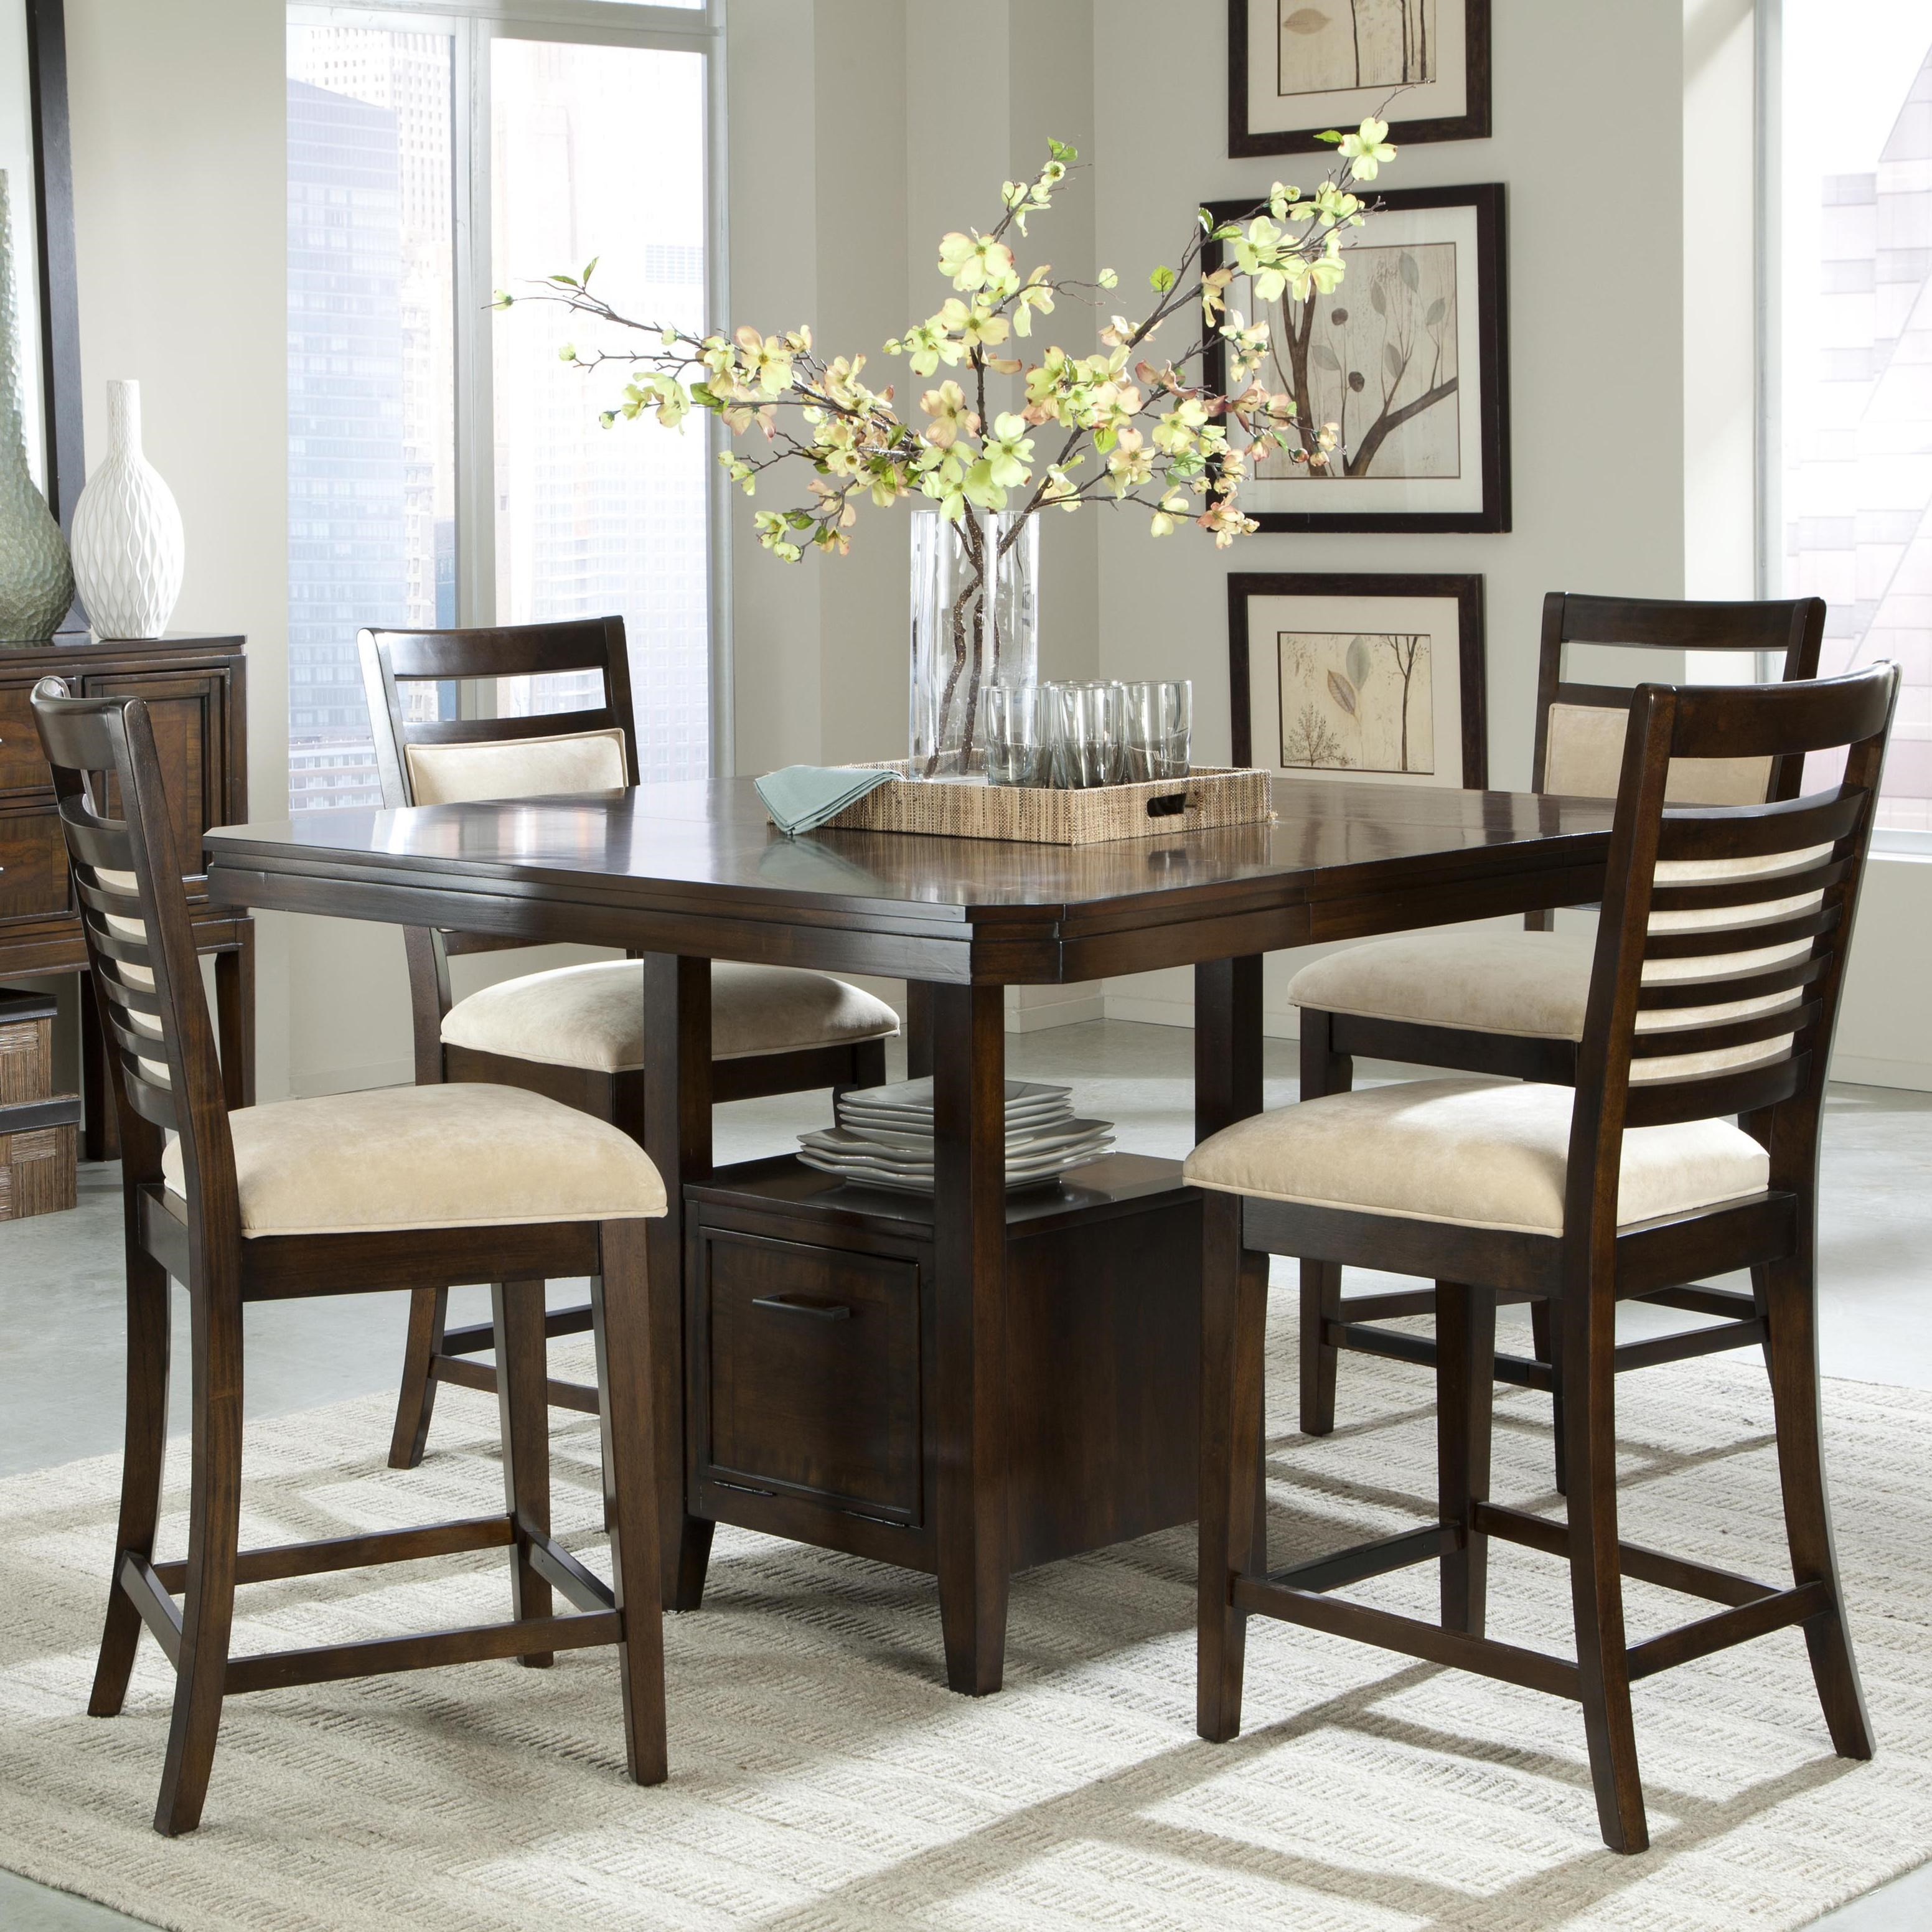 Standard Furniture Avion 5 Piece Counter Height Table Set And Upholstered Counter  Height Chairs With Ladder Back Wood Detailing